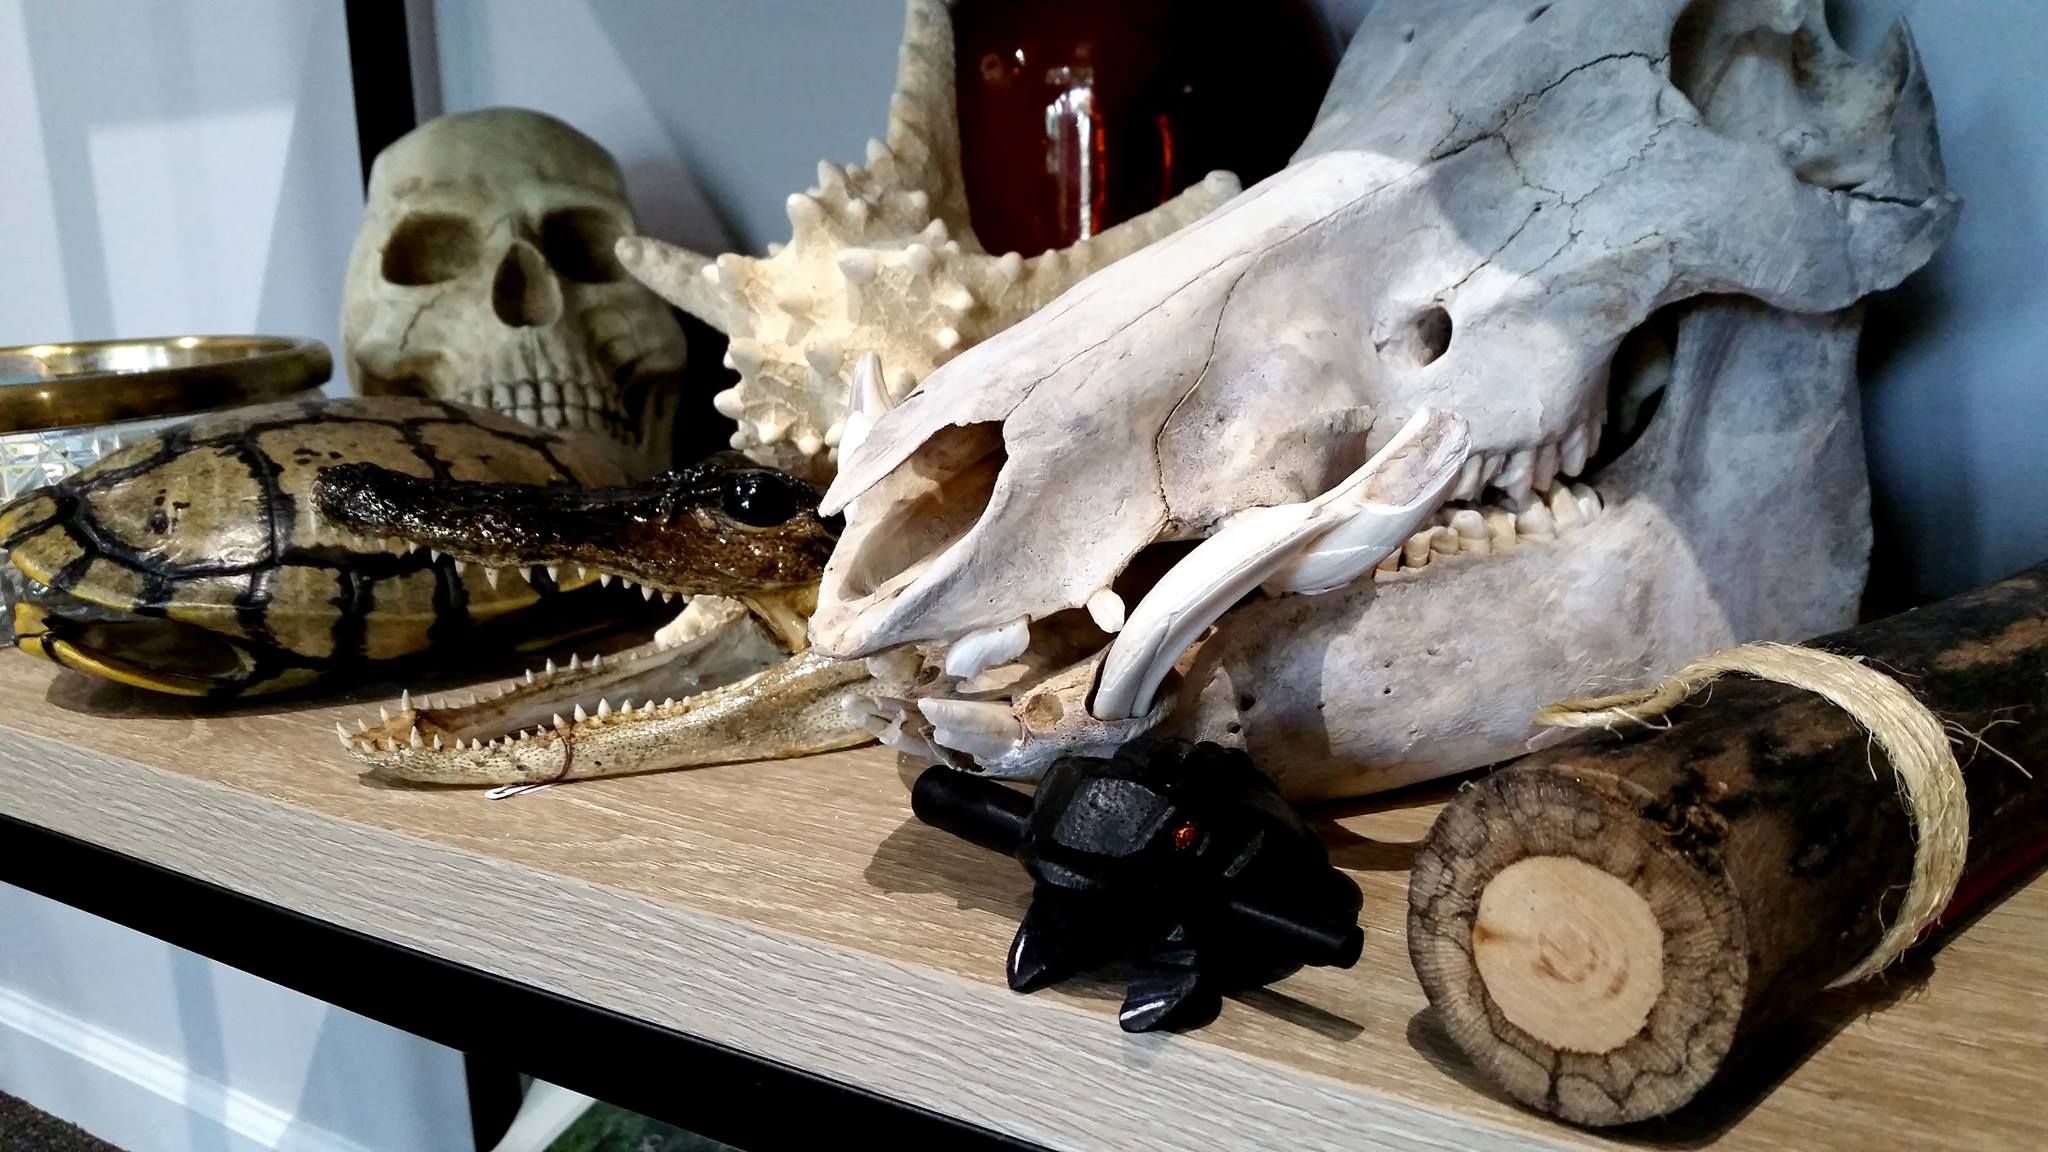 Escape Rooms Haunted places near me, Real haunted houses